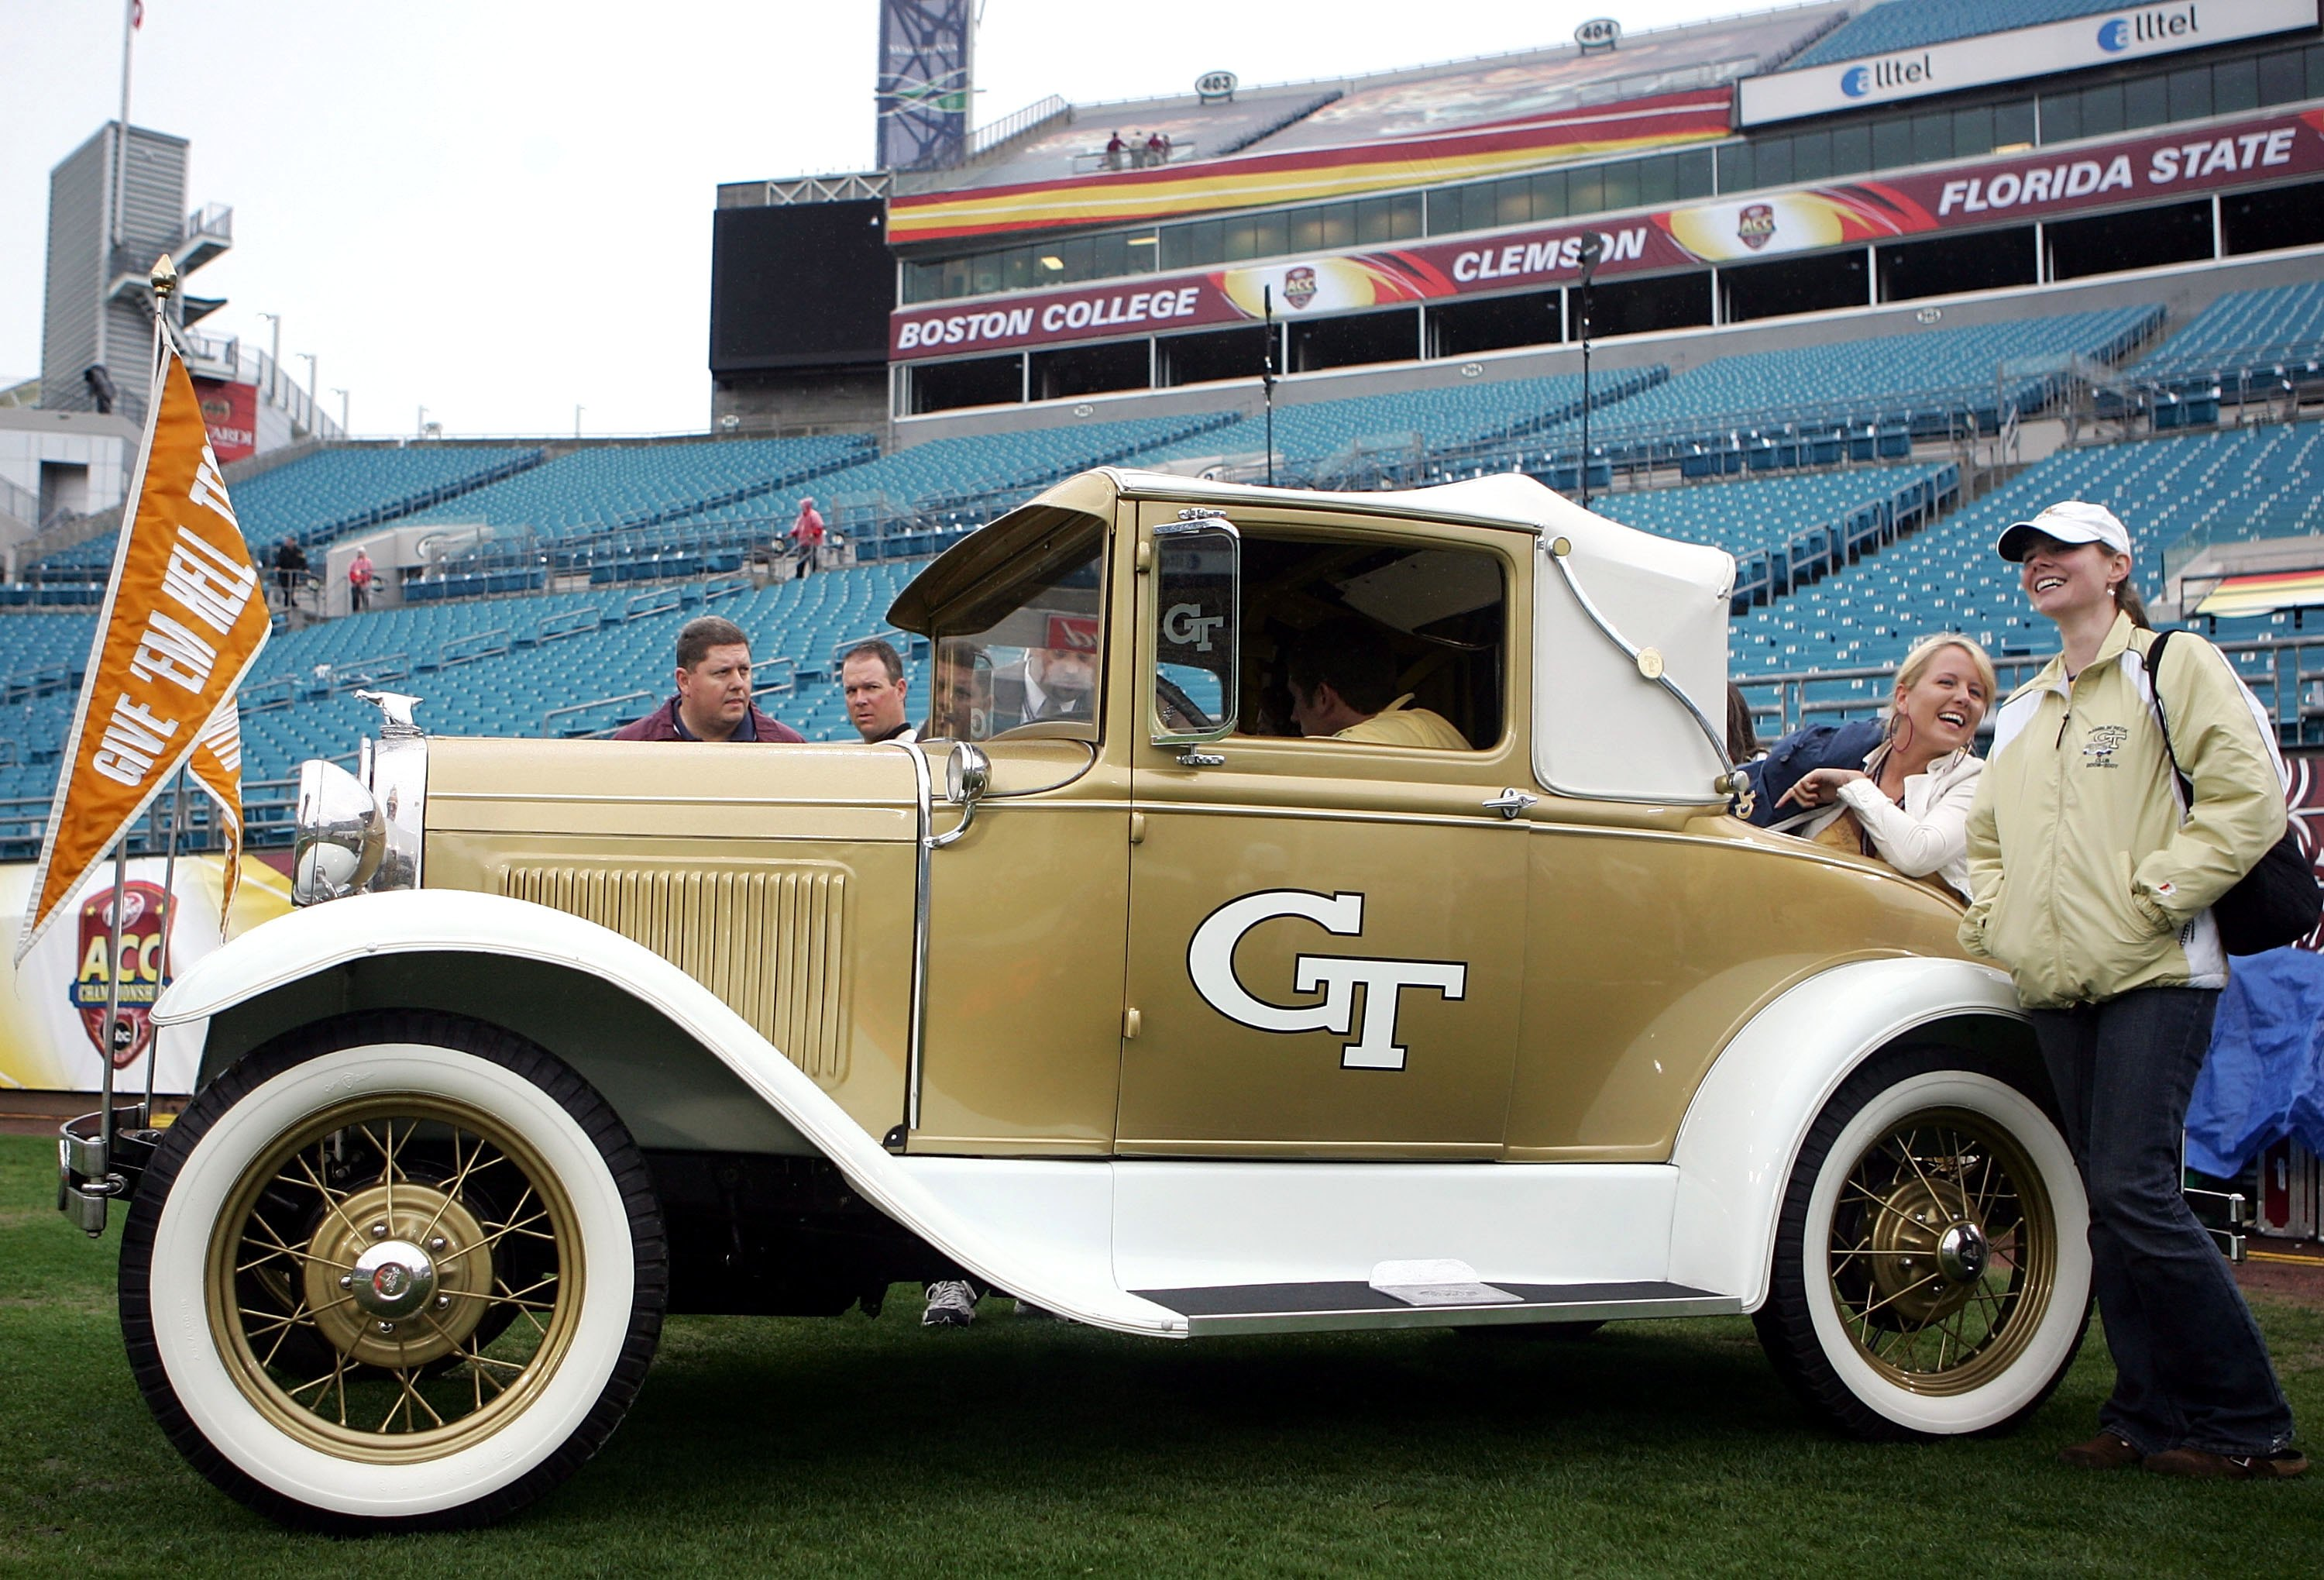 JACKSONVILLE, FL - DECEMBER 02:  Georgia Tech Yellow Jackets fans drive onto the field in an antique car prior to a game against the Wake Forest Demon Deacons during the Atlantic Coast Conference Championship on December 2, 2006 at Alltel Stadium in Jacks